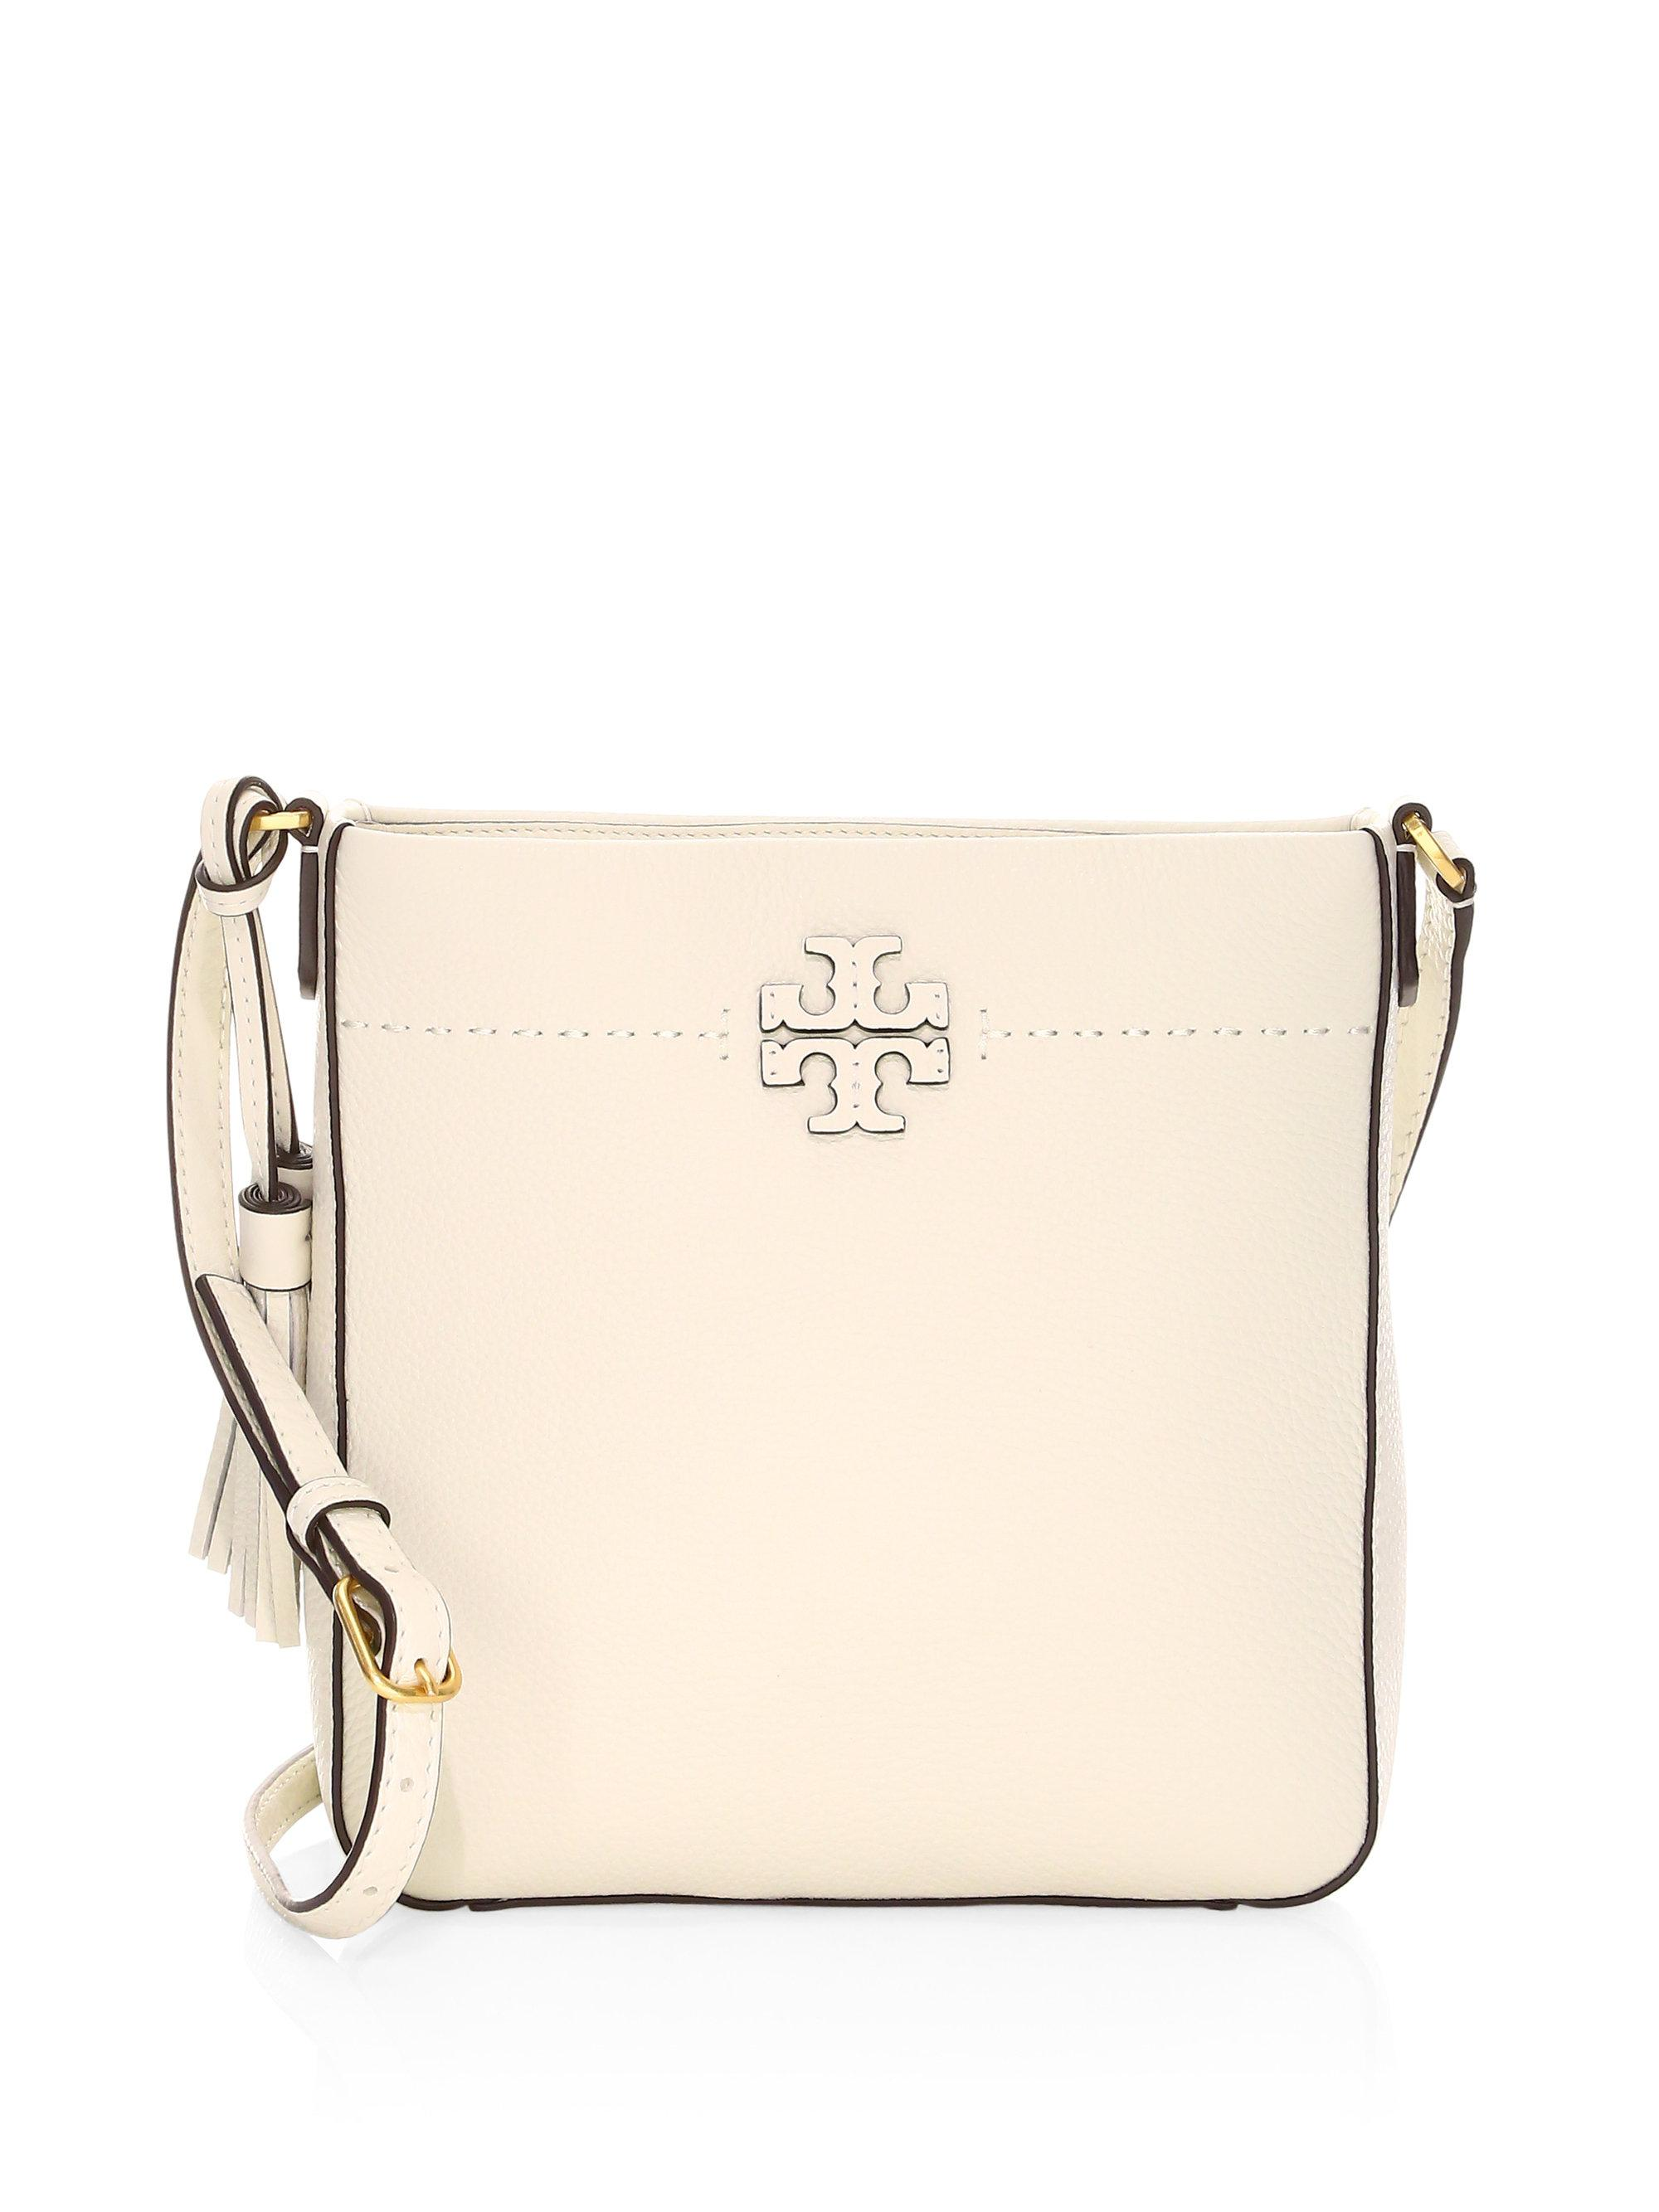 81ce086e7 Tory Burch Mcgraw Swingpack Crossbody Bag in Natural - Lyst